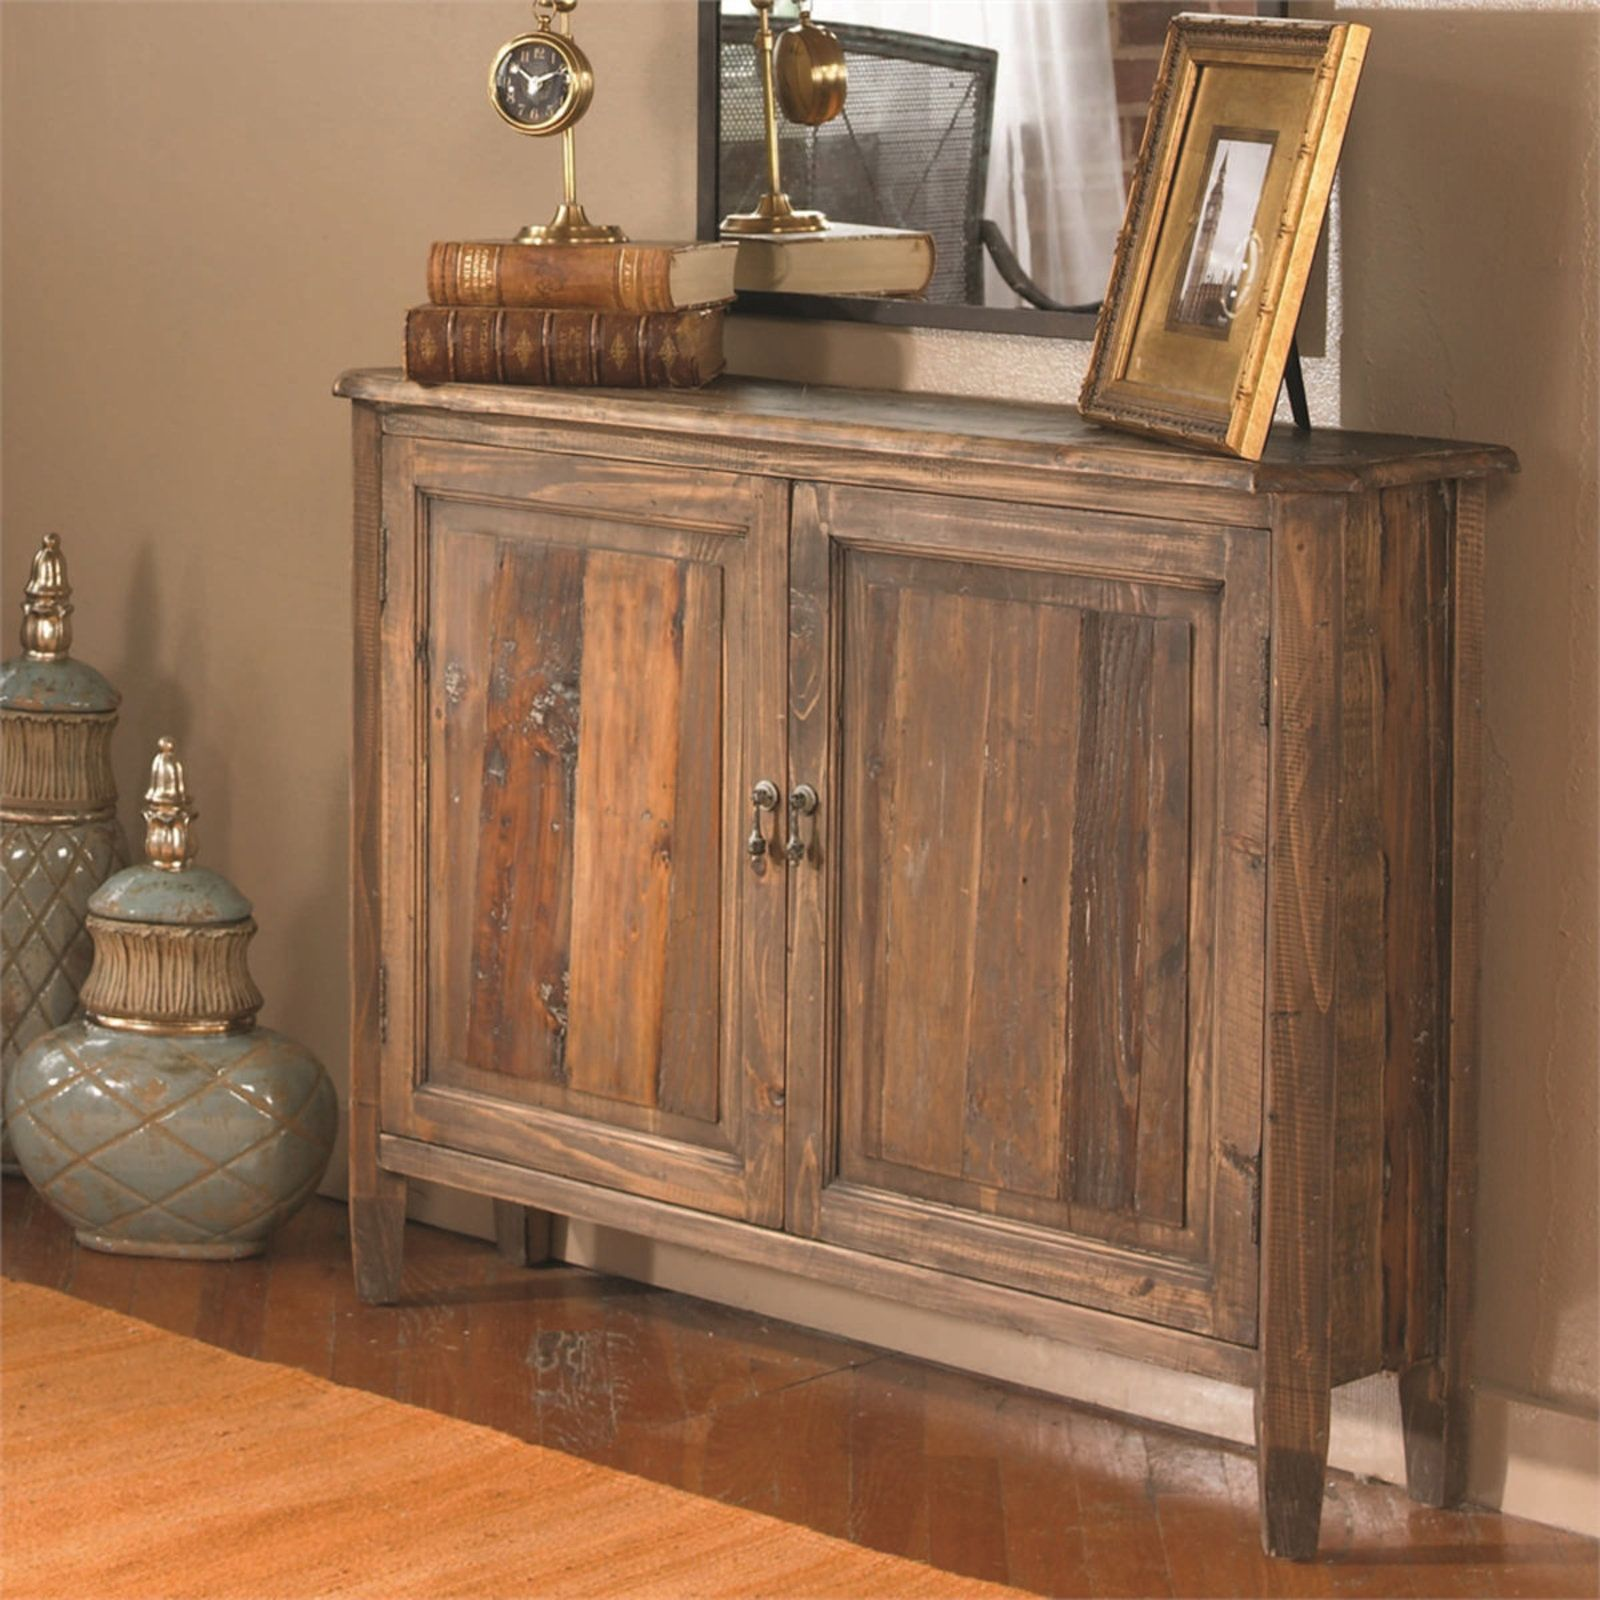 Narrow Reclaimed Wood Console Table Reclaimed Wood Console Table Reclaimed Wood Console Cabinet Reclaimed Wood Cabinet